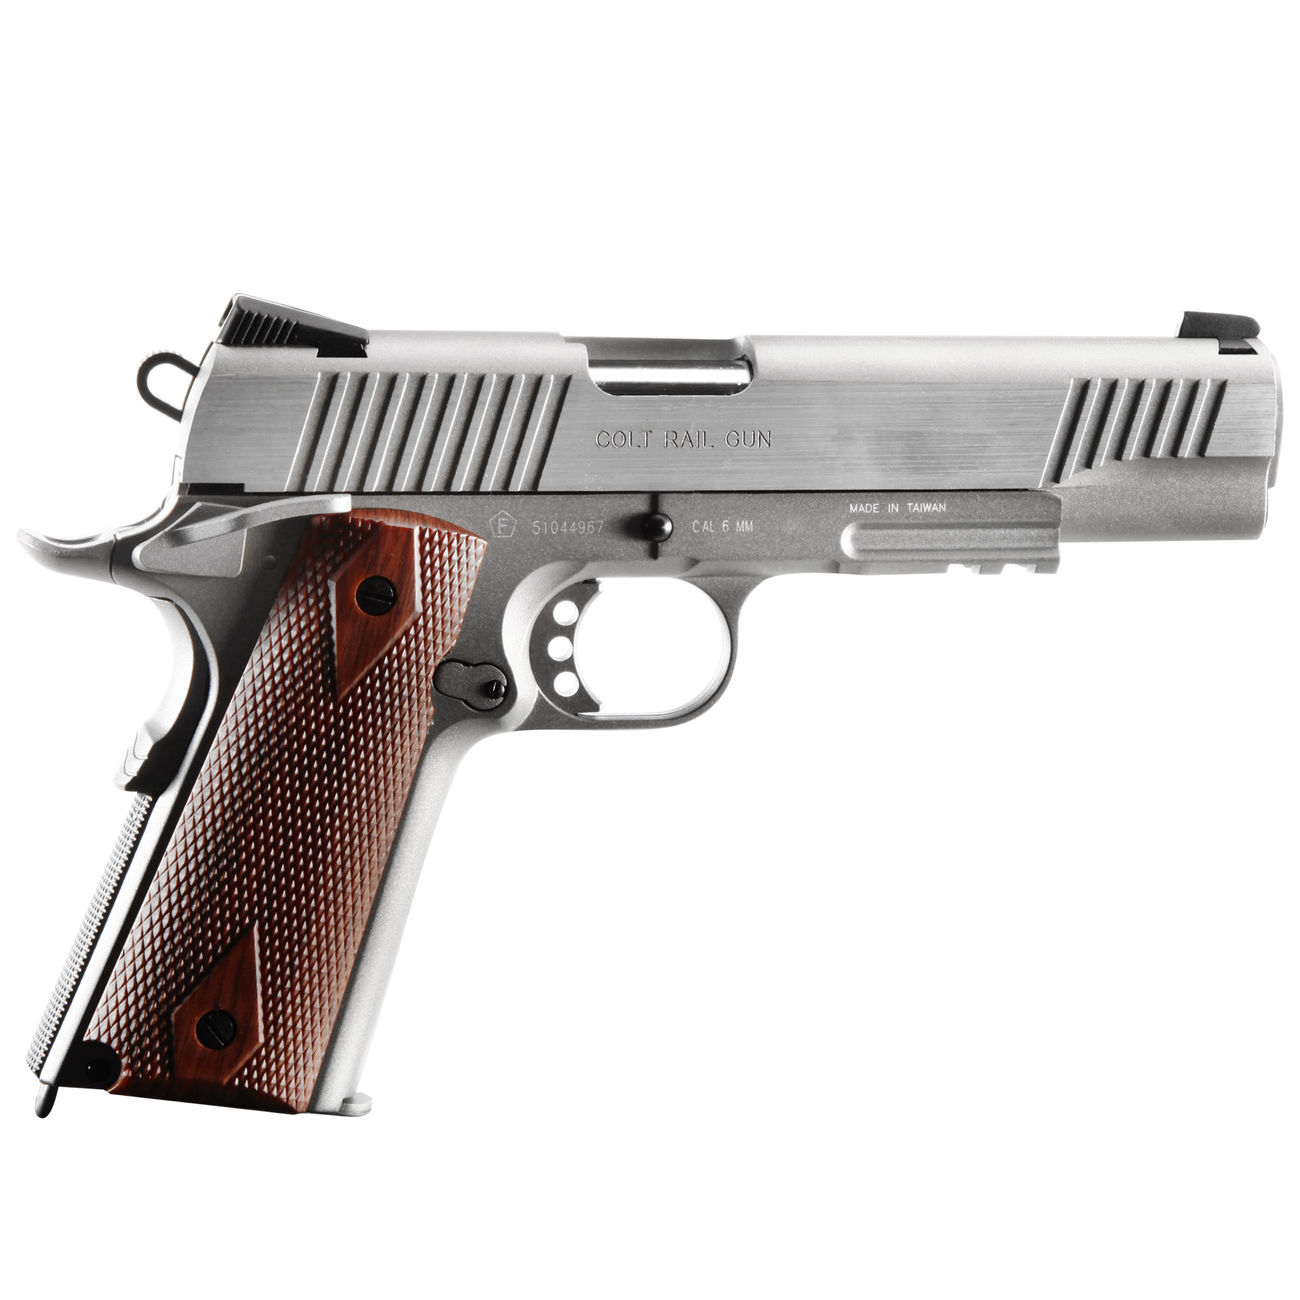 Cybergun Colt 1911 Rail Gun Vollmetall CO2 BlowBack 6mm BB Stainless-Version 2